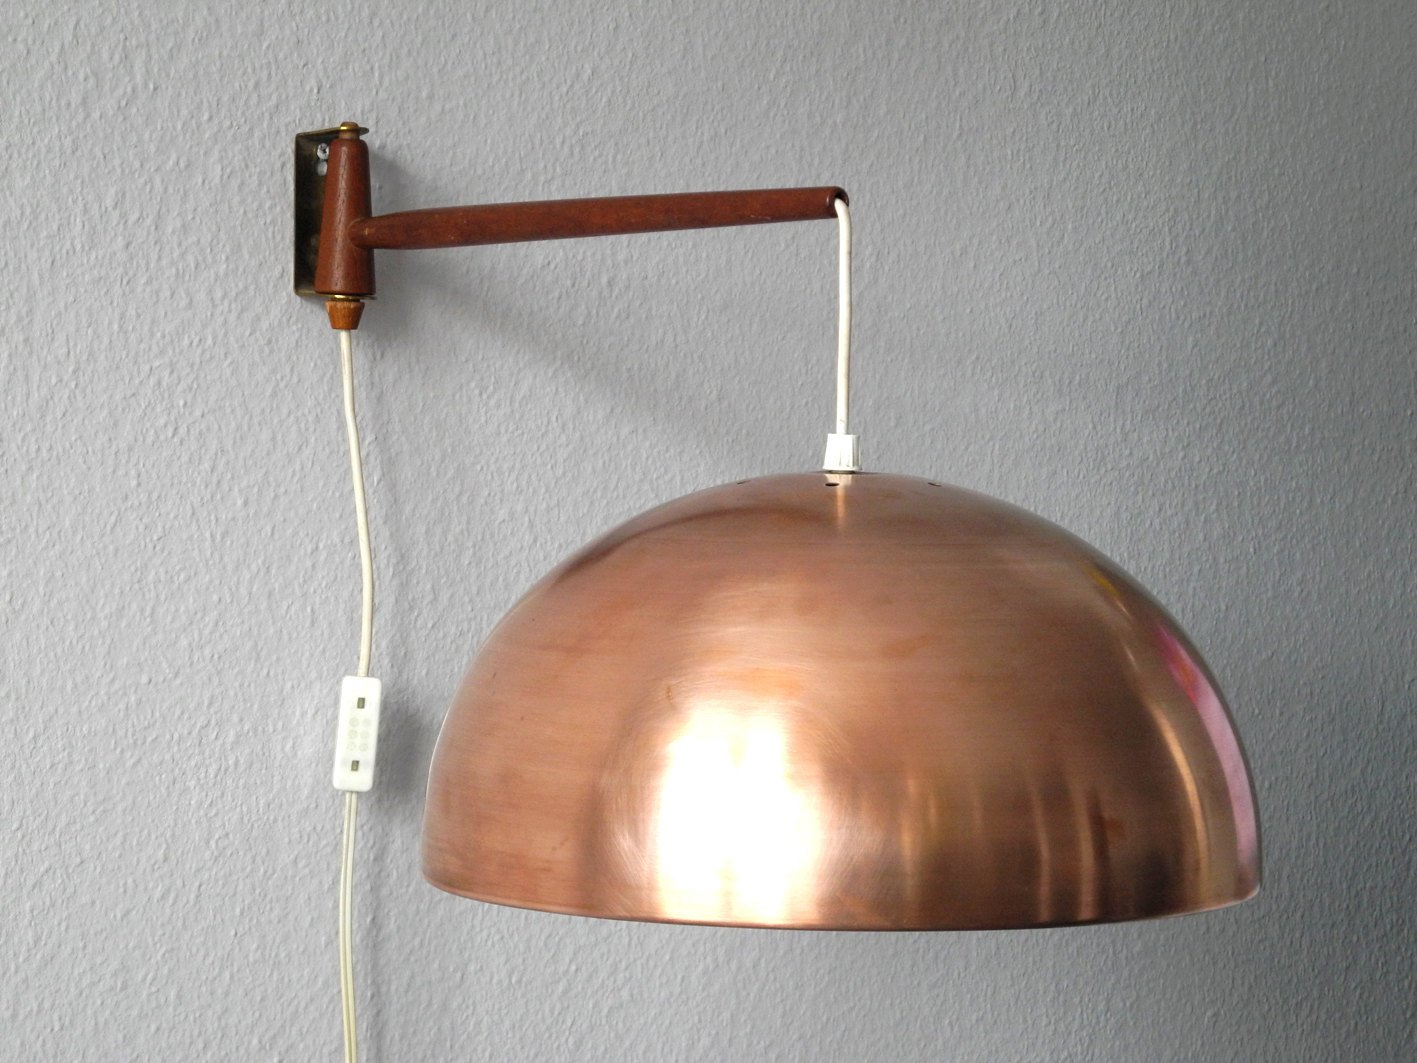 Teak & Brass Swivel Wall Lamp with Copper Shade, 1960s for sale at Pamono